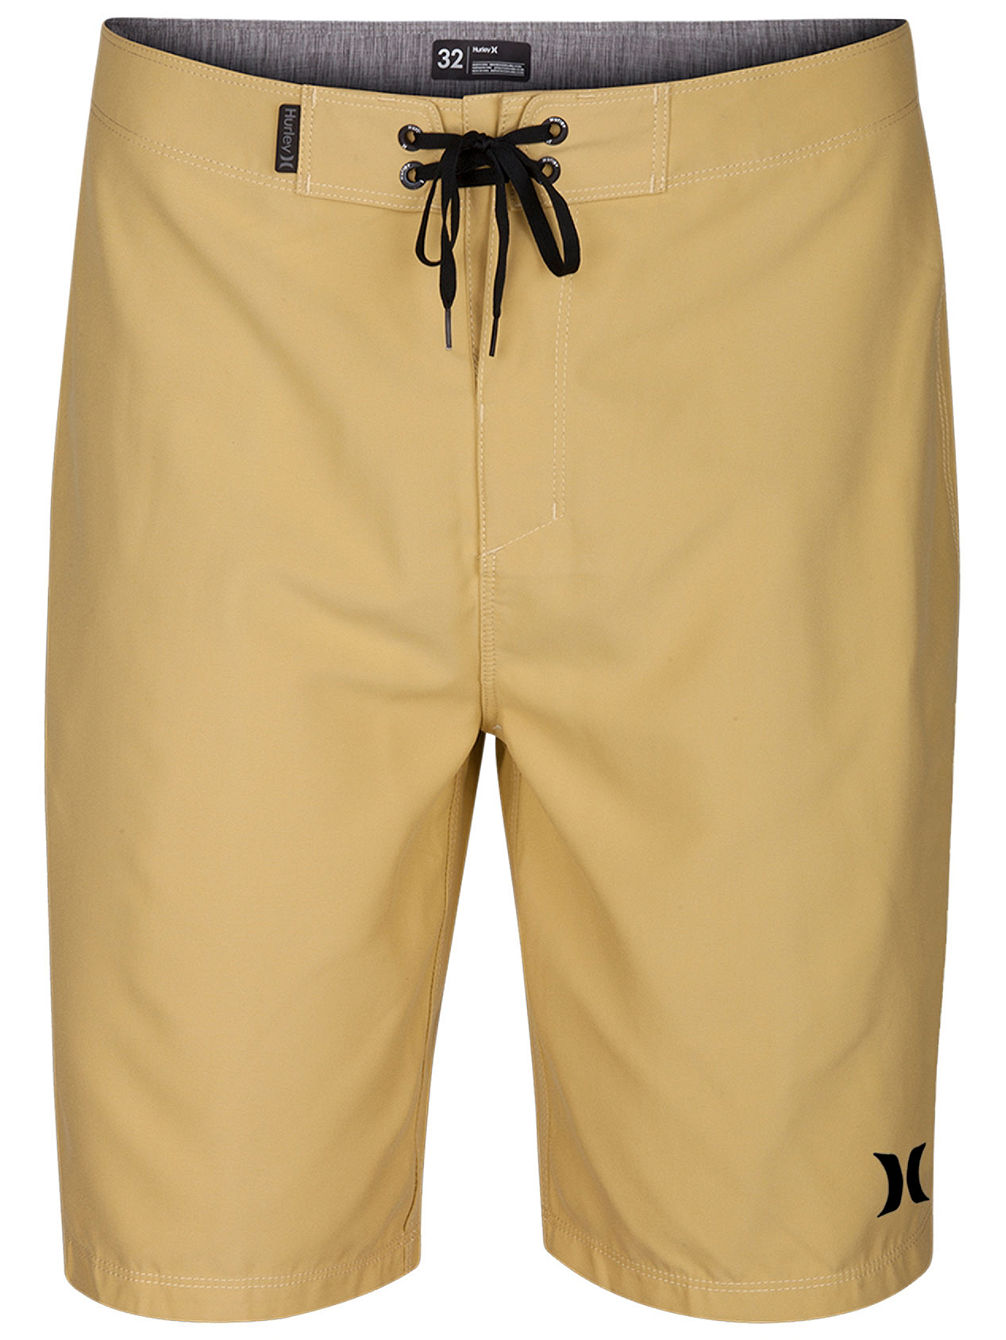 e1ddf241c1 Buy Hurley One & Only 2.0 21'' Boardshorts online at Blue Tomato